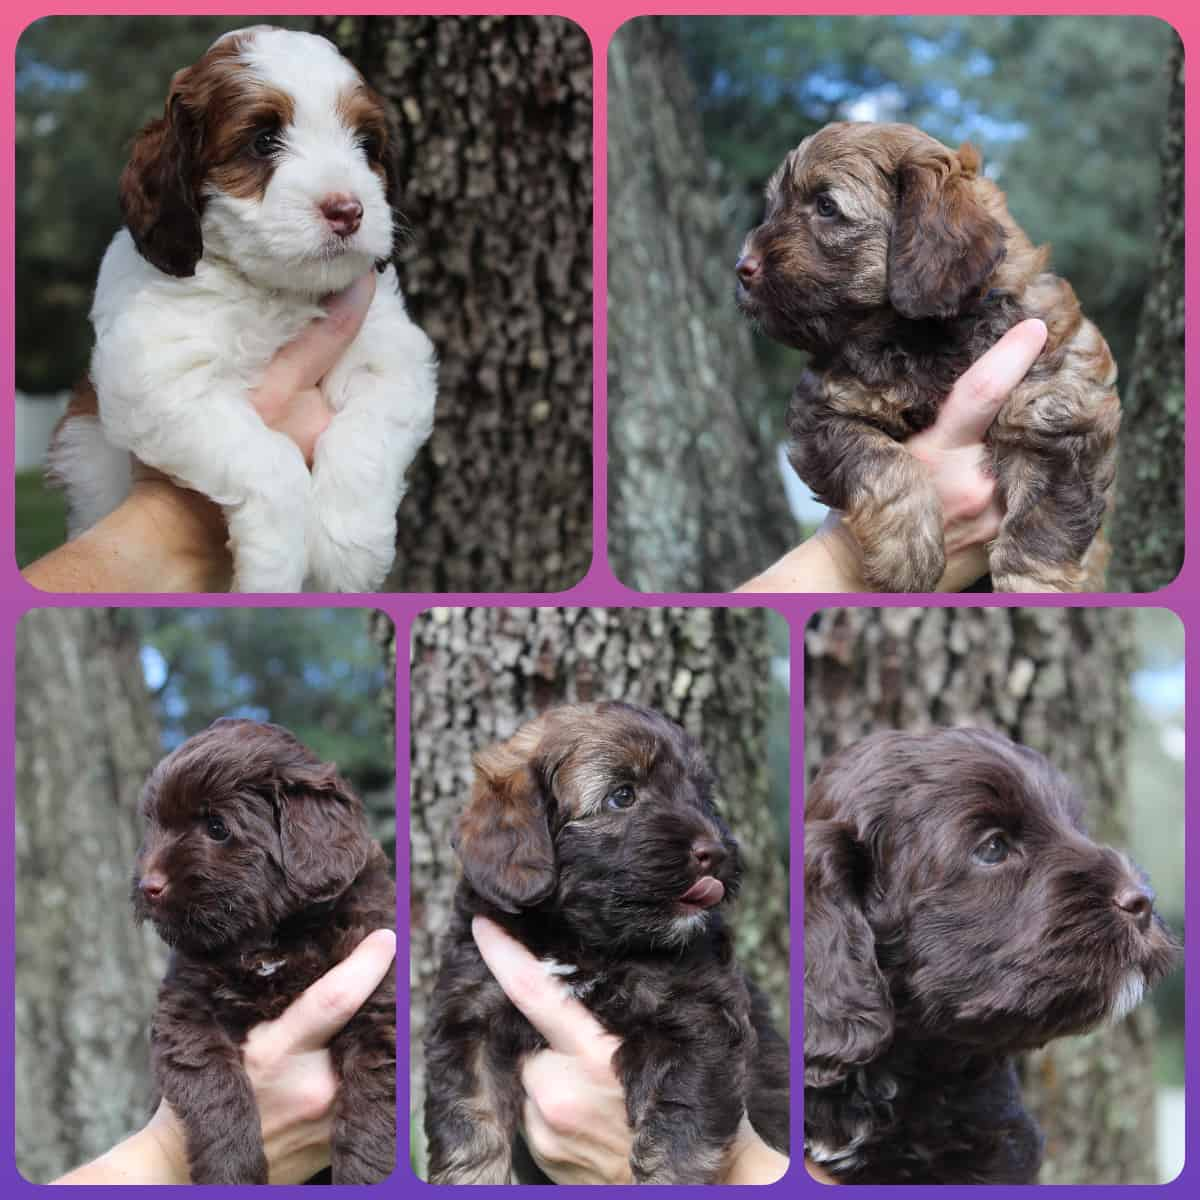 Reak and Buddy';s litter of Australian Labradoodle puppies from Fall 2020